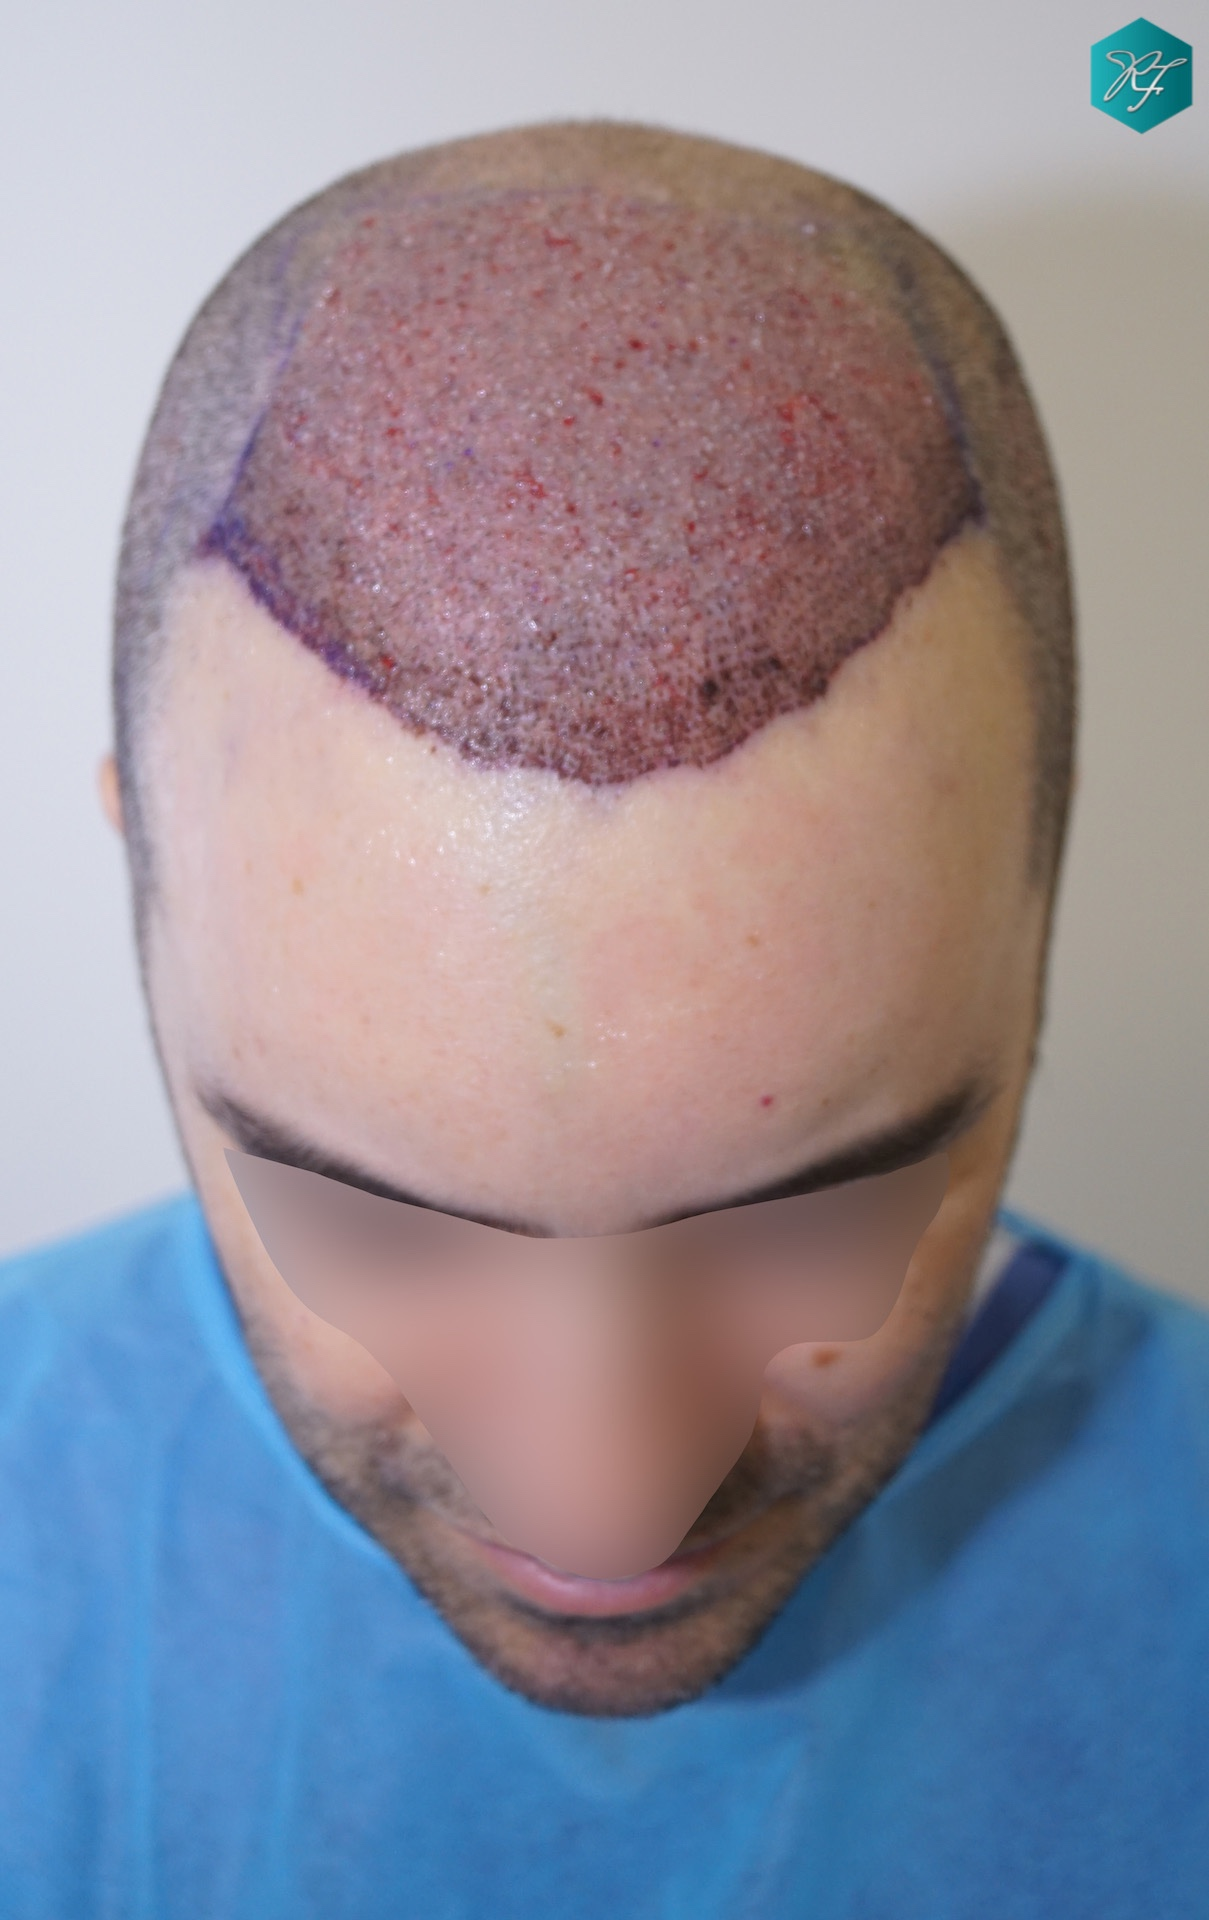 HAARTRANSPLANTION